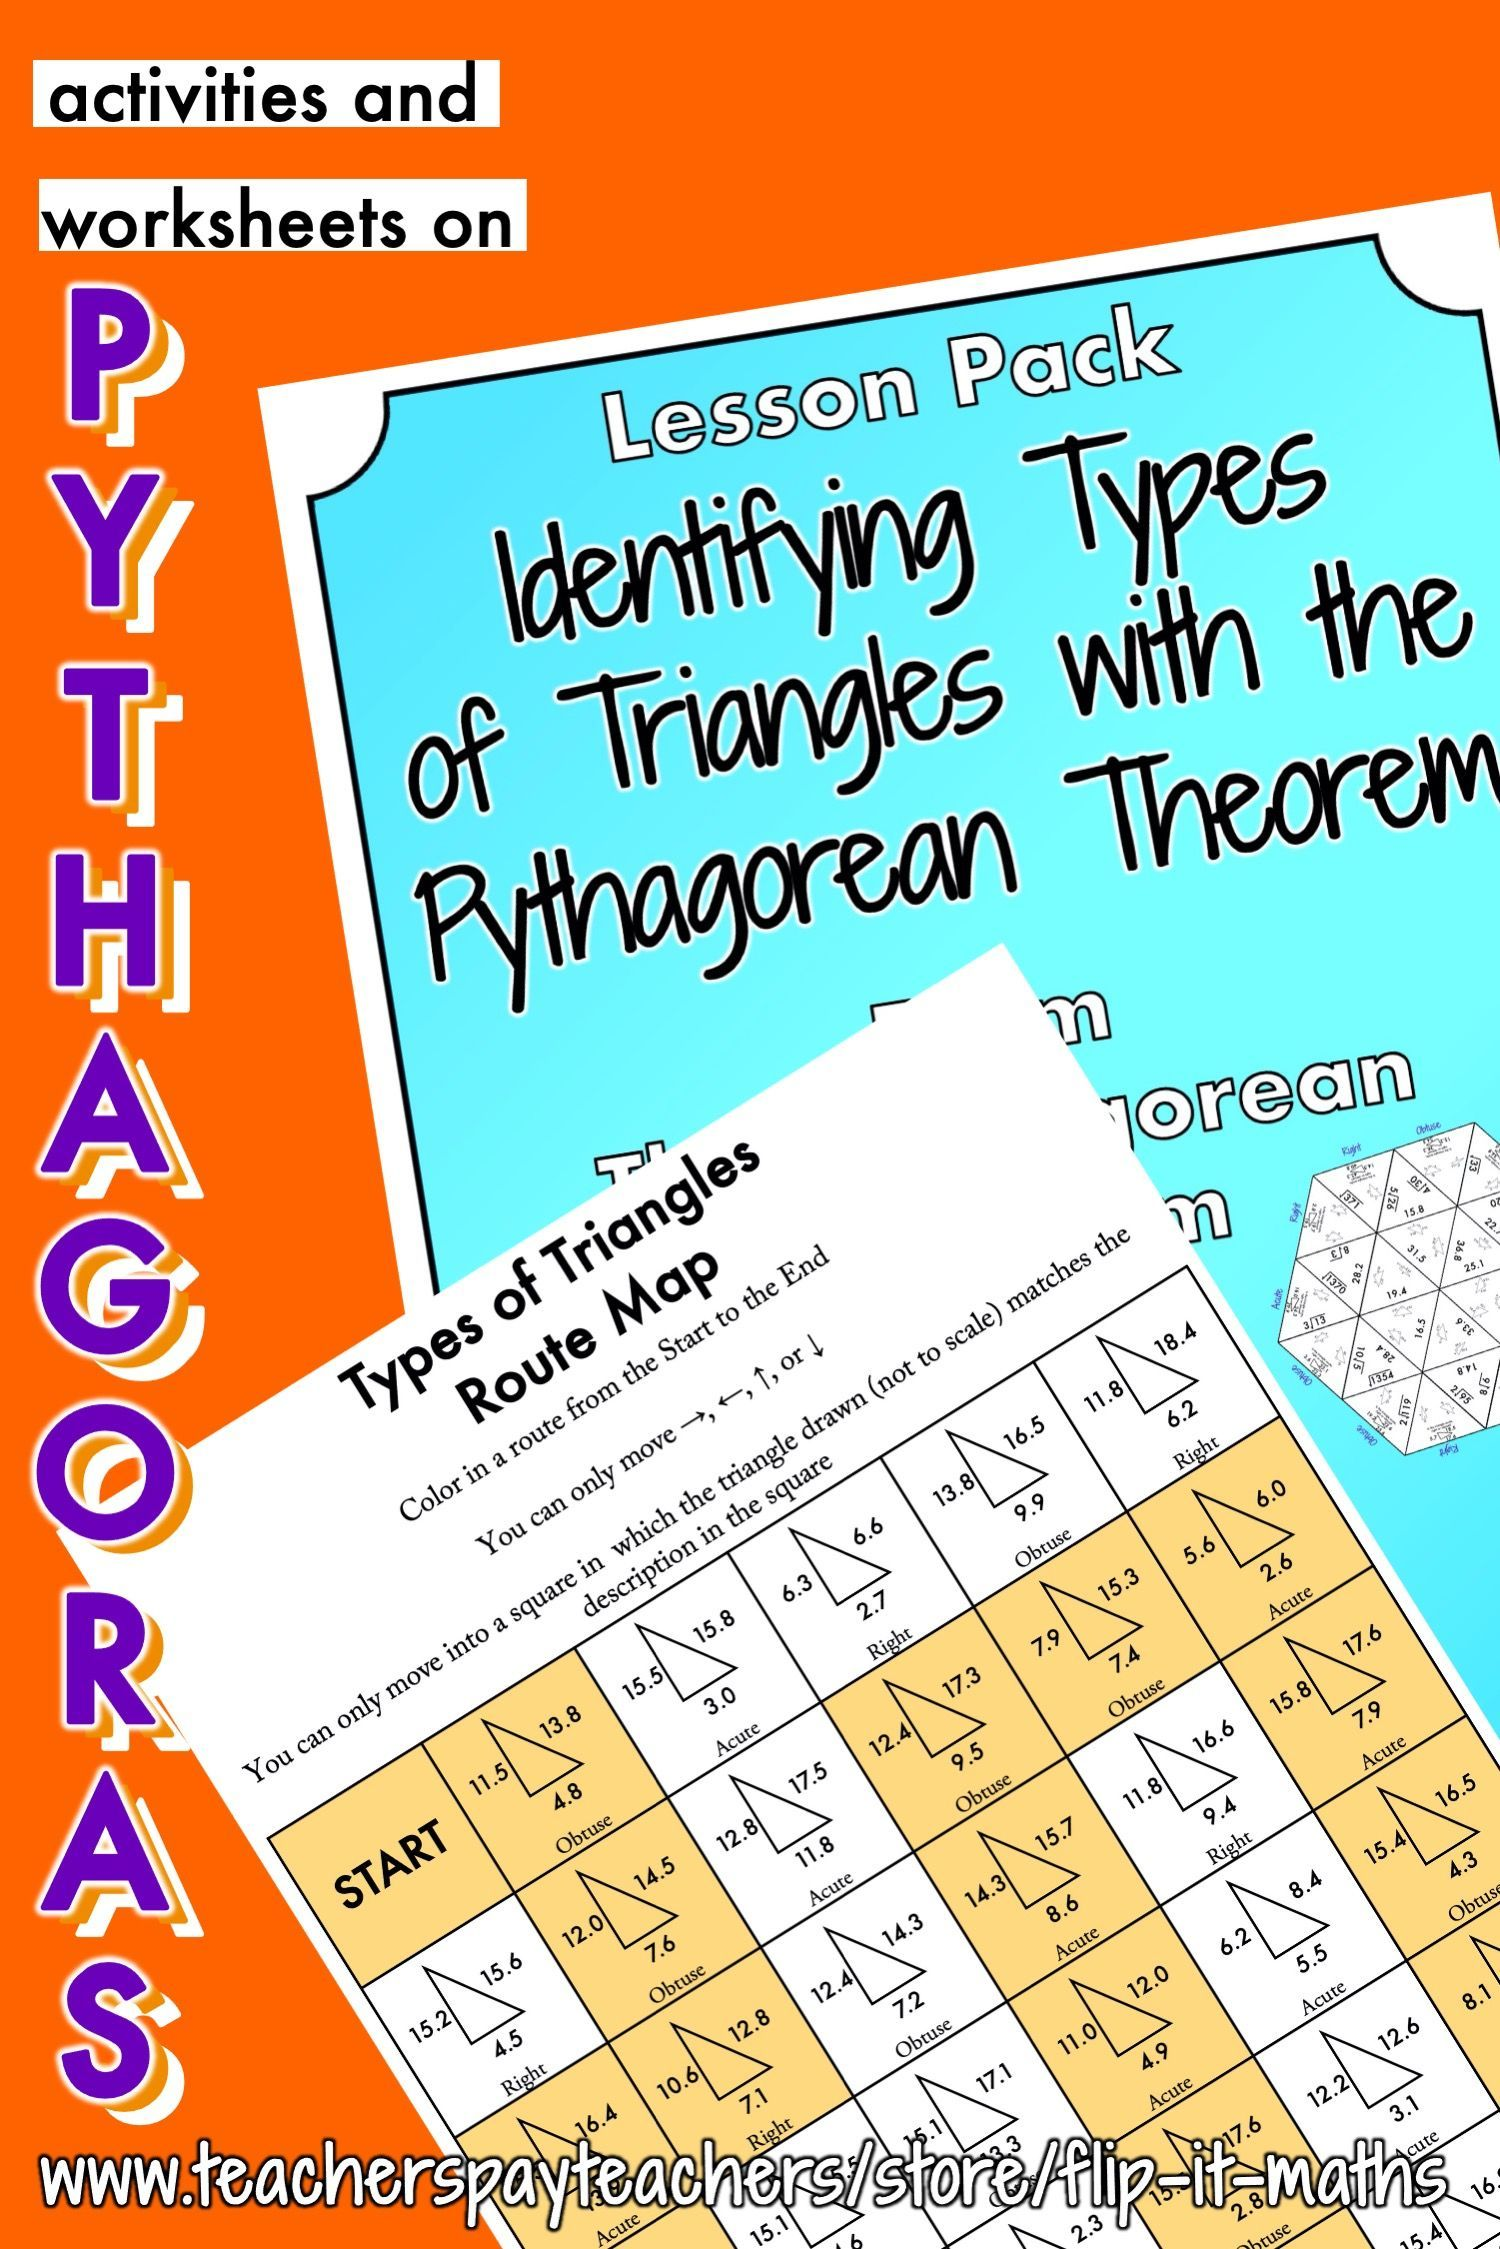 Identifying Types Of Triangles With The Pythagorean